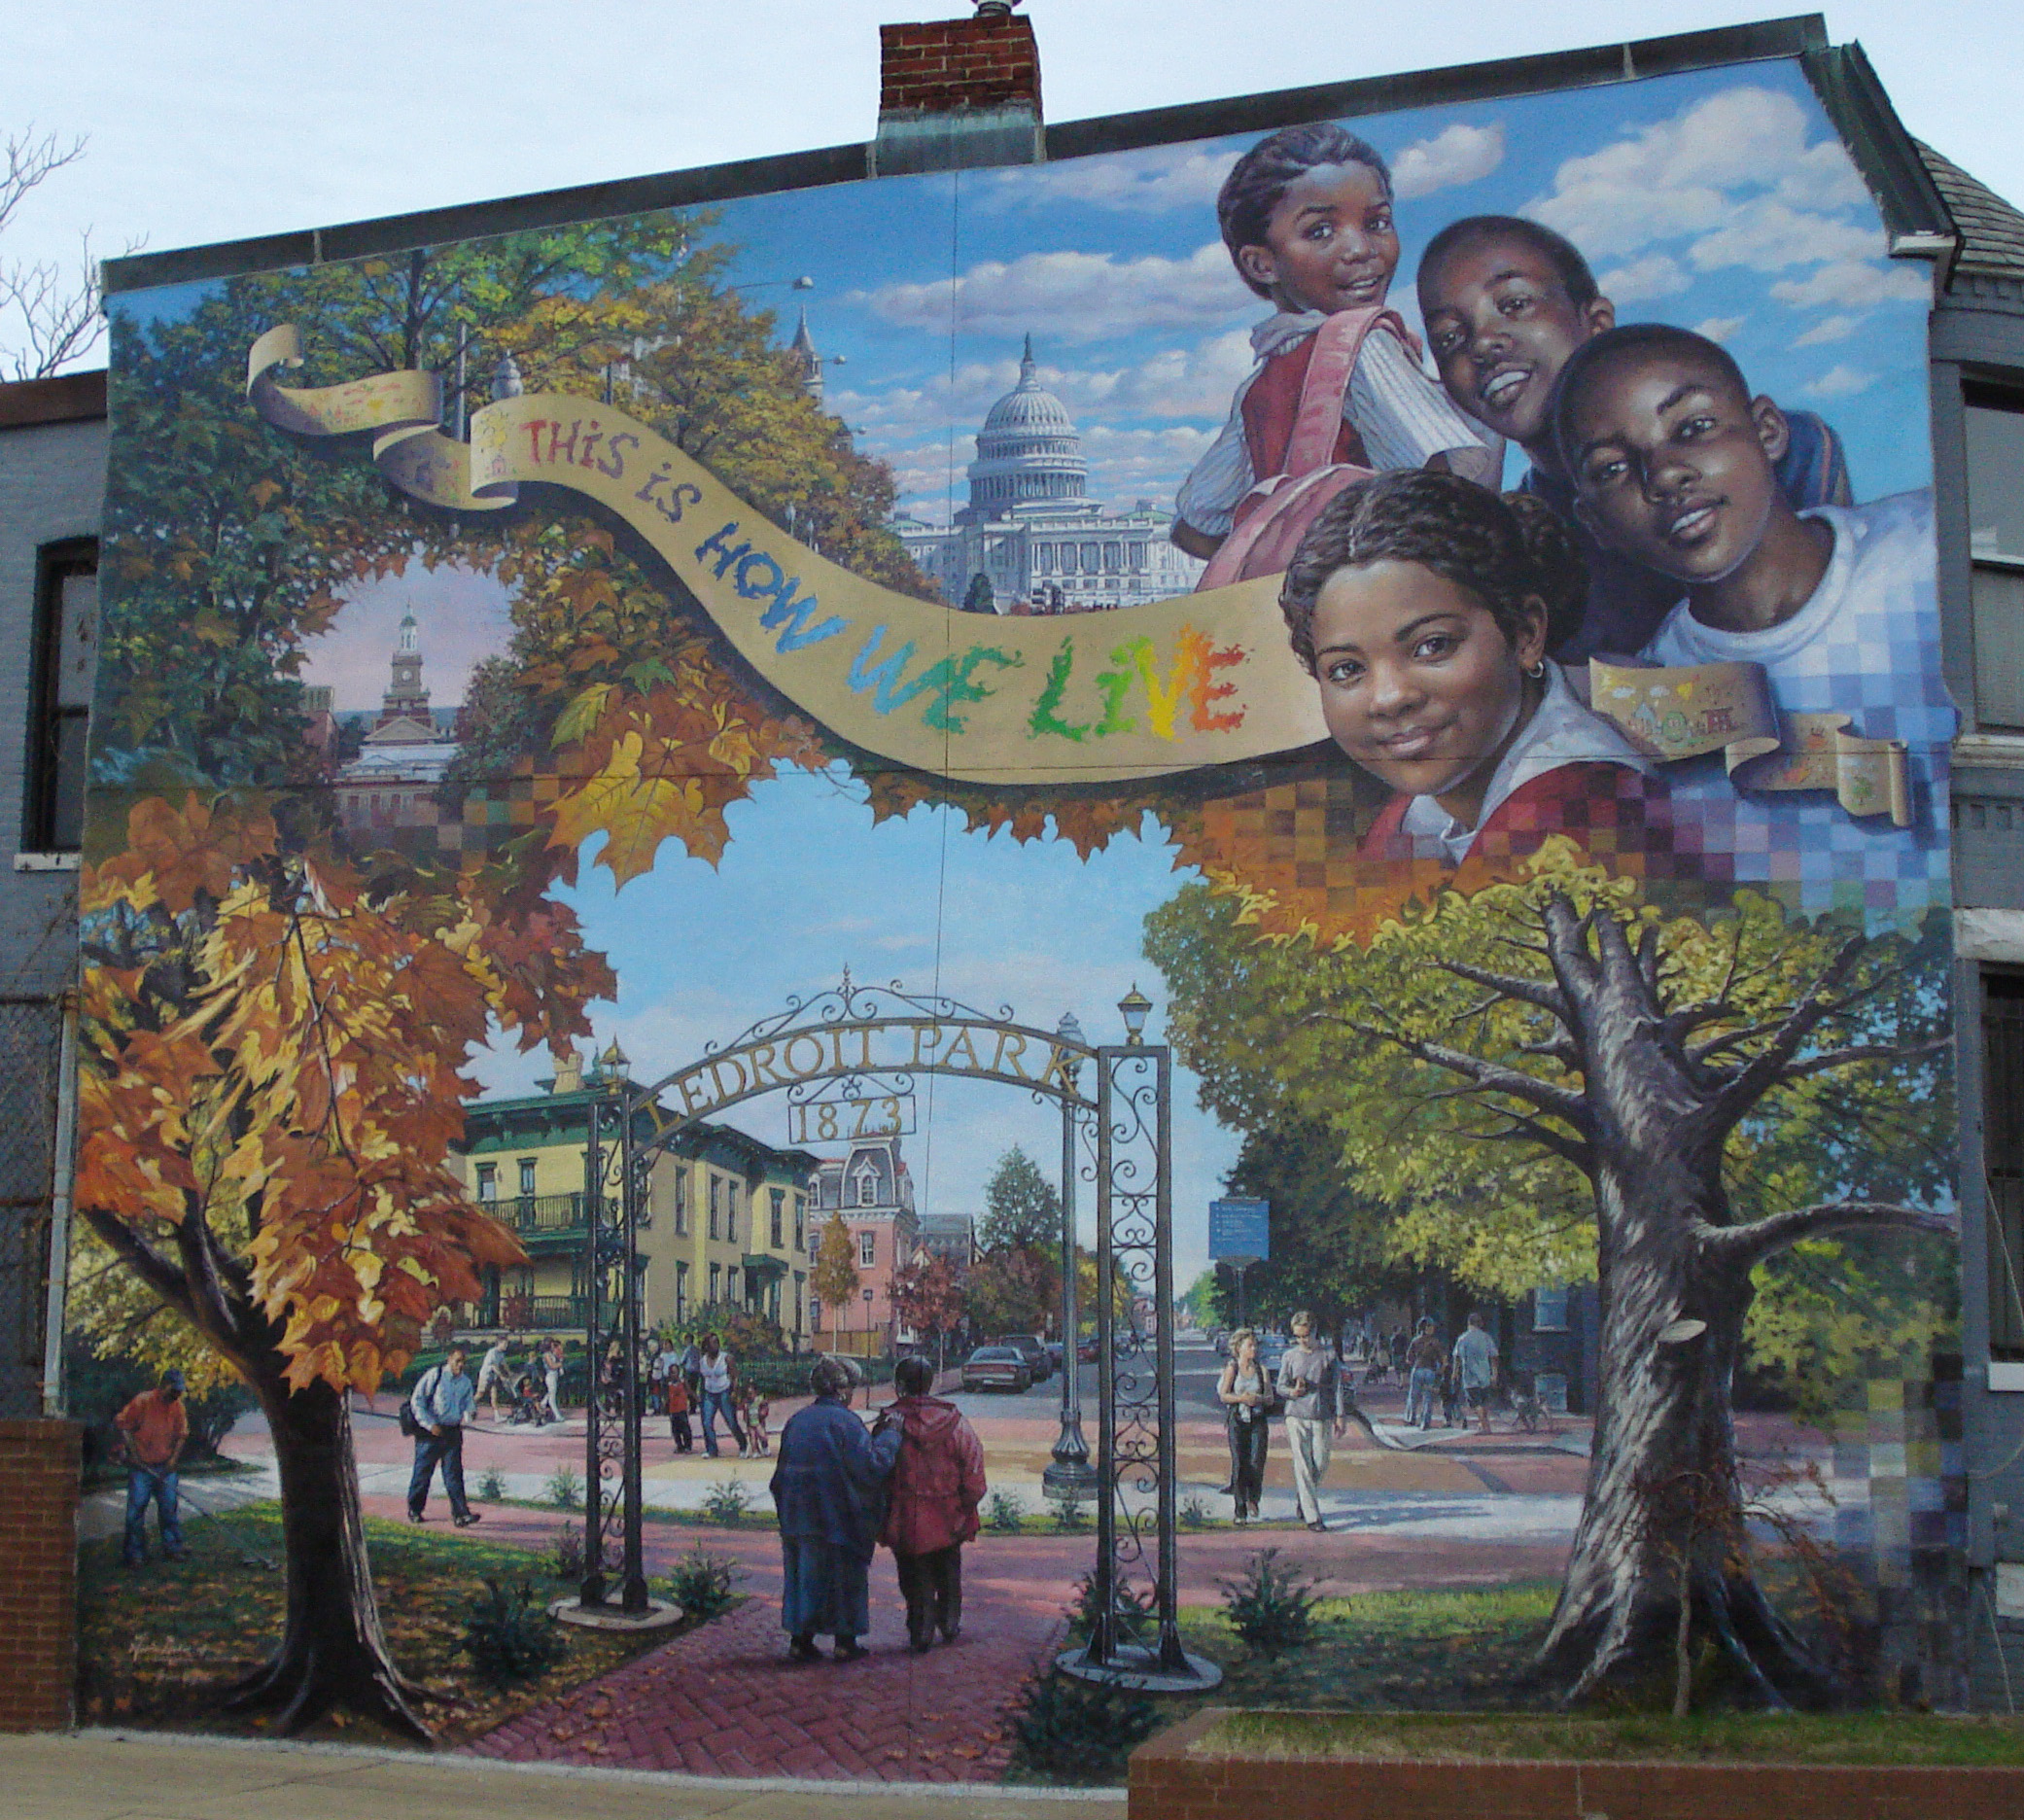 """This is How We Live,"" a mural from The Park at LeDroit by Garin Baker. CC BY-SA 3.0, https://en.wikipedia.org/w/index.php?curid=20967083"